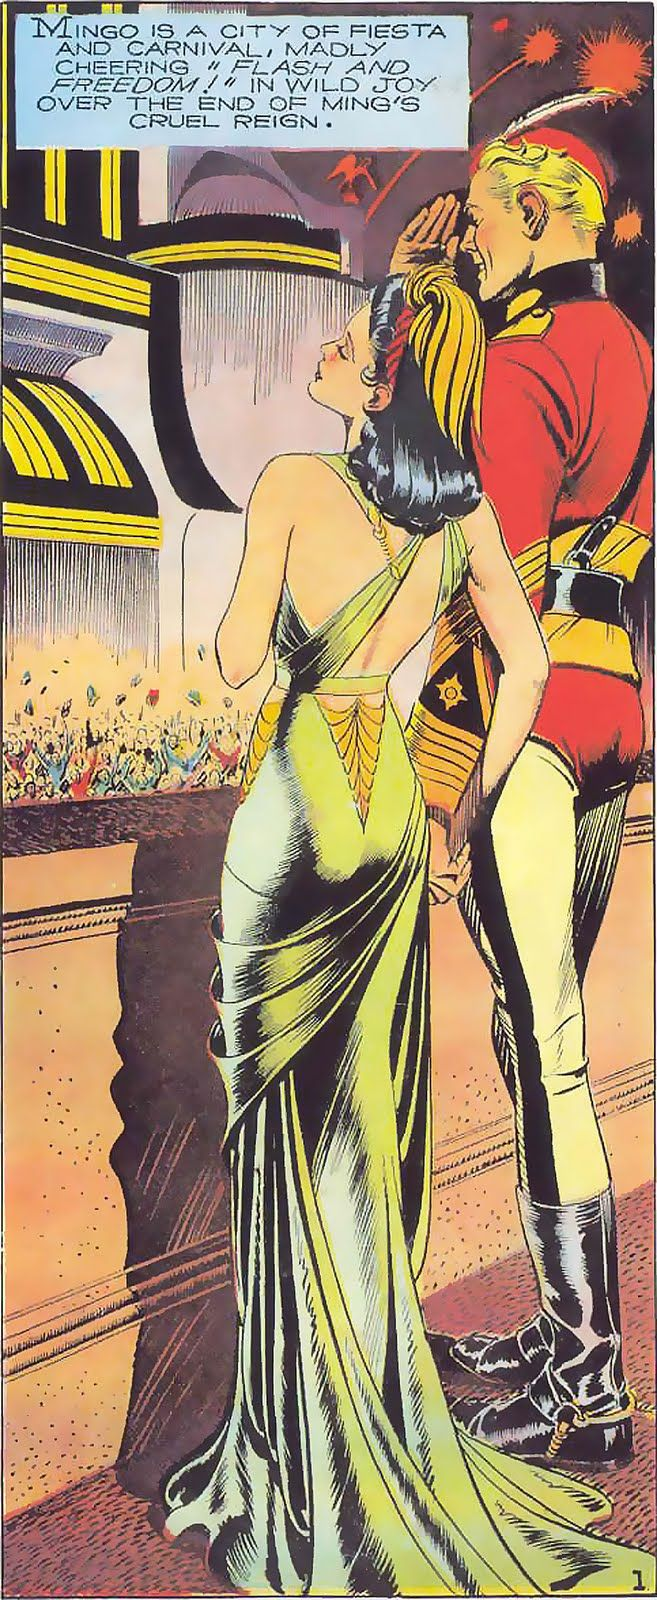 1941 Flash Gordon by Alex Raymond